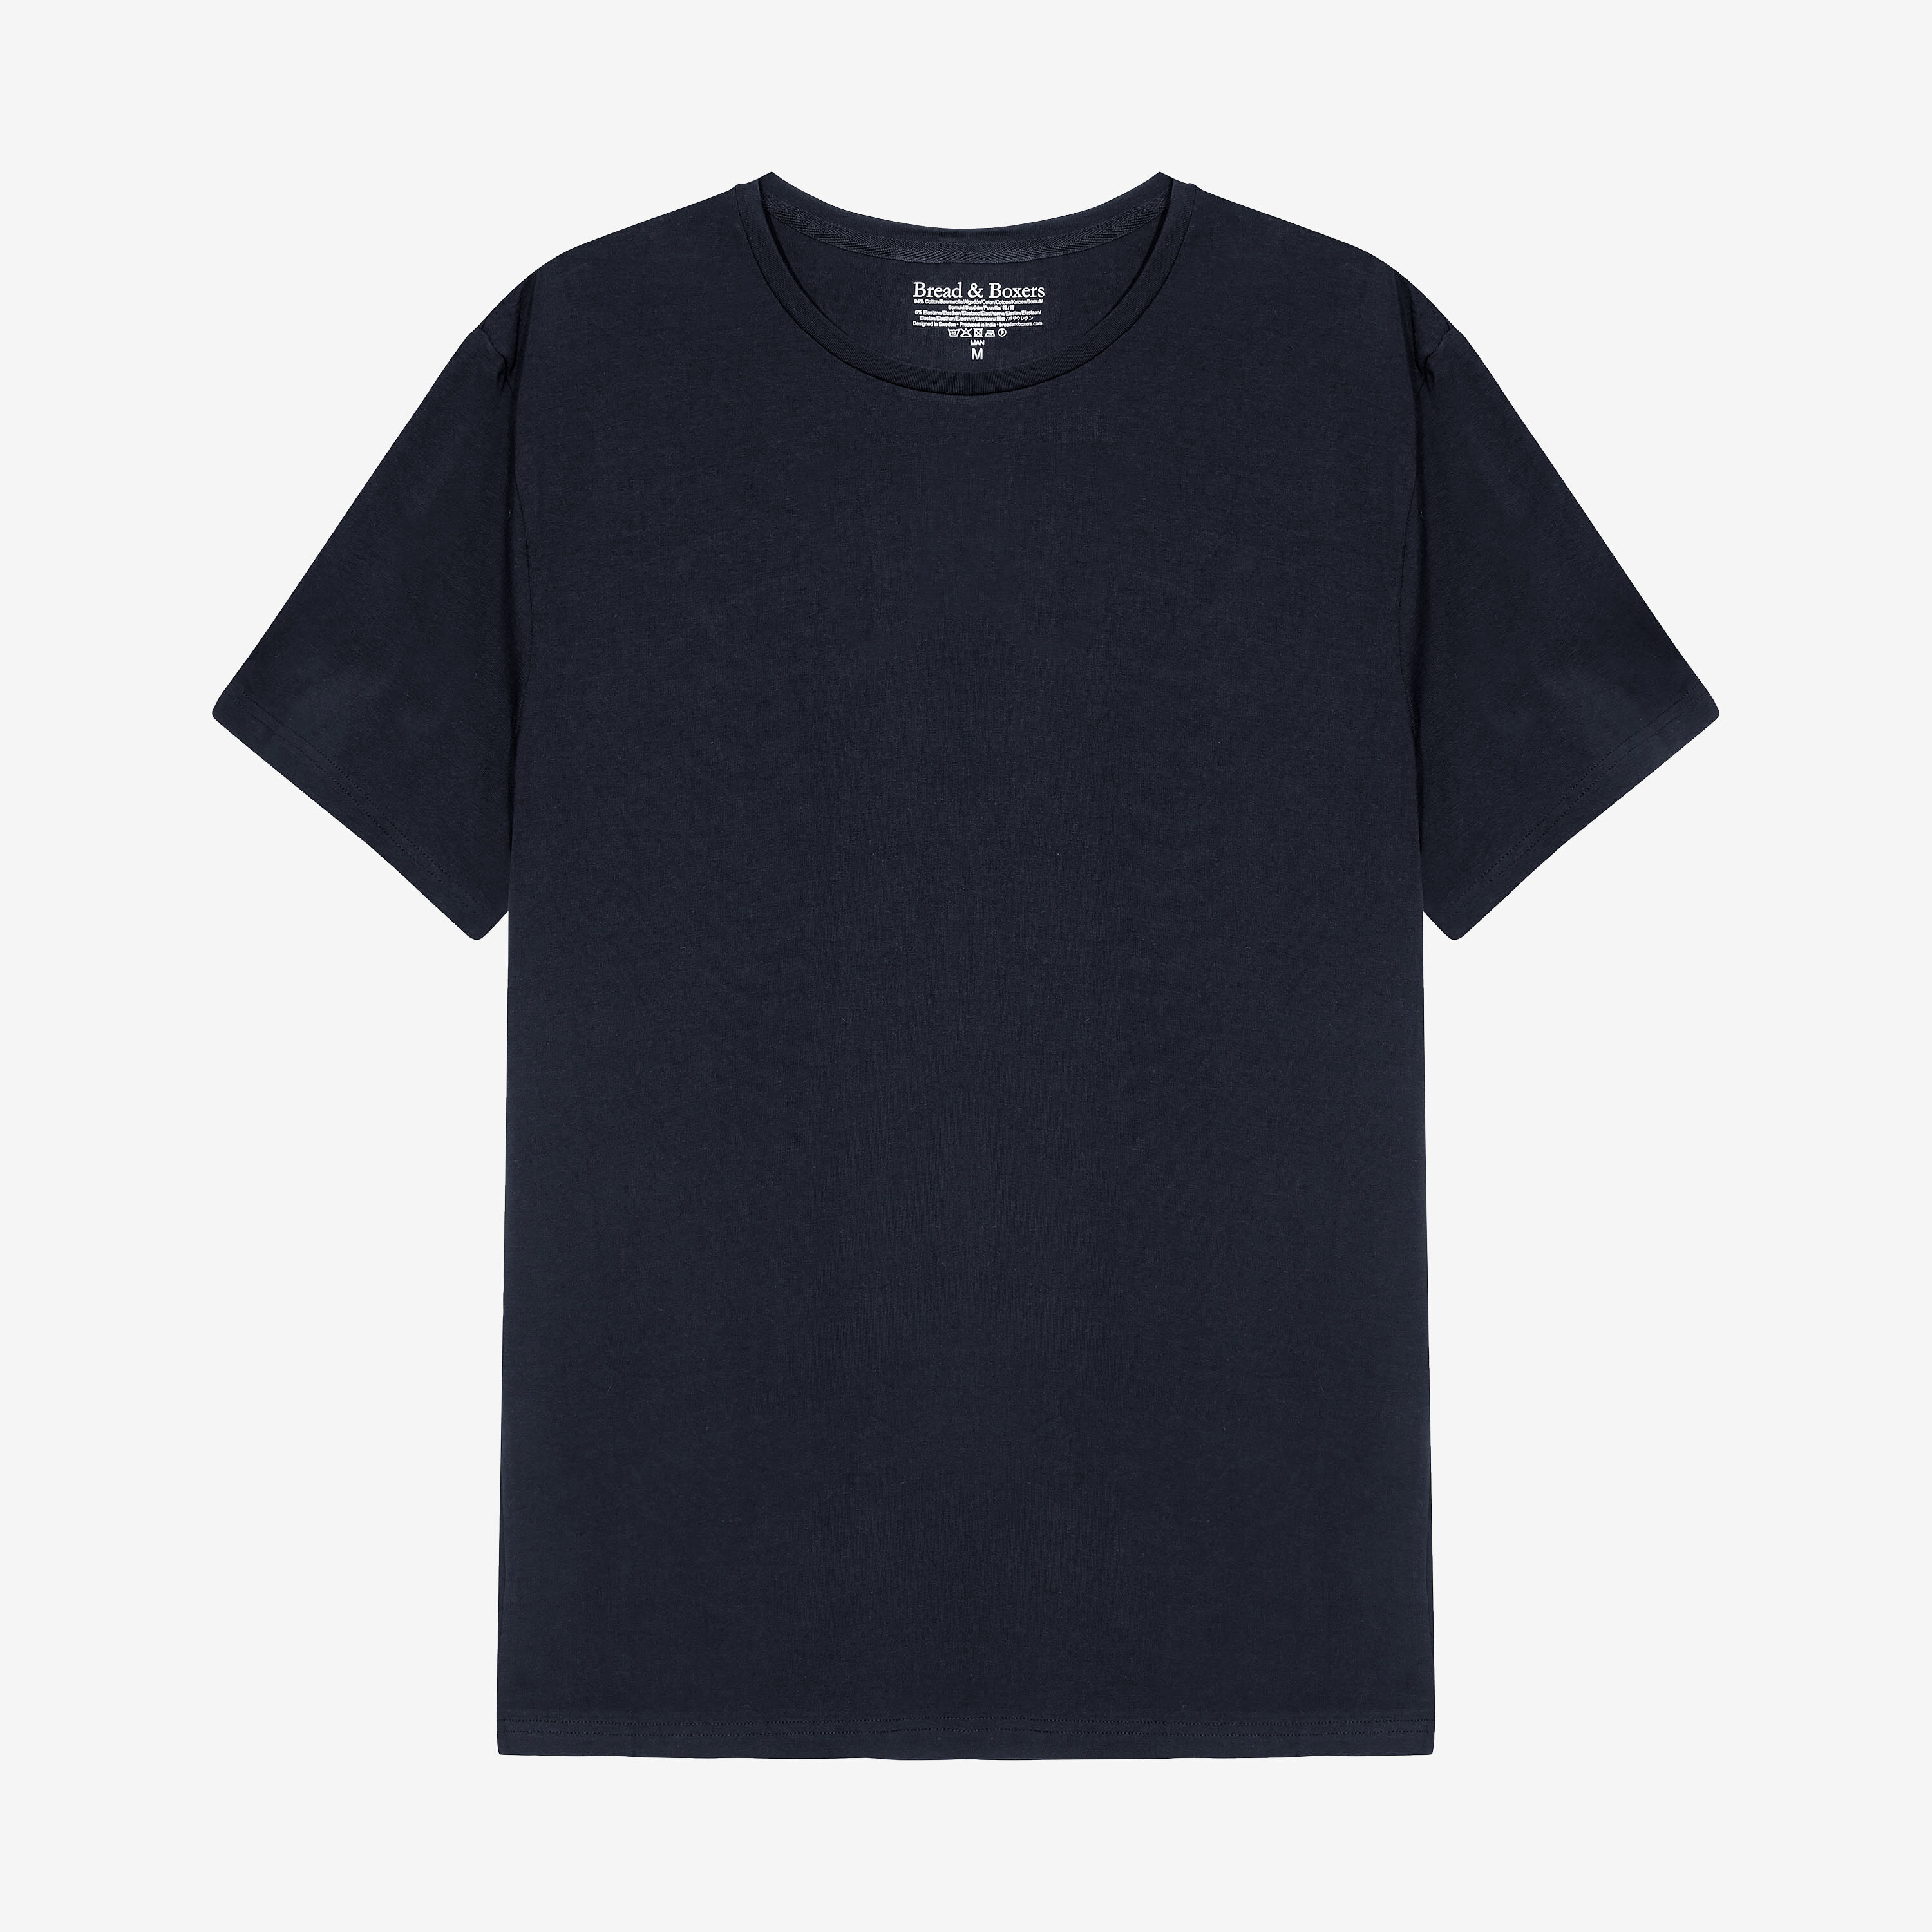 101204_Man_Crew-Neck_dark-navy_CO